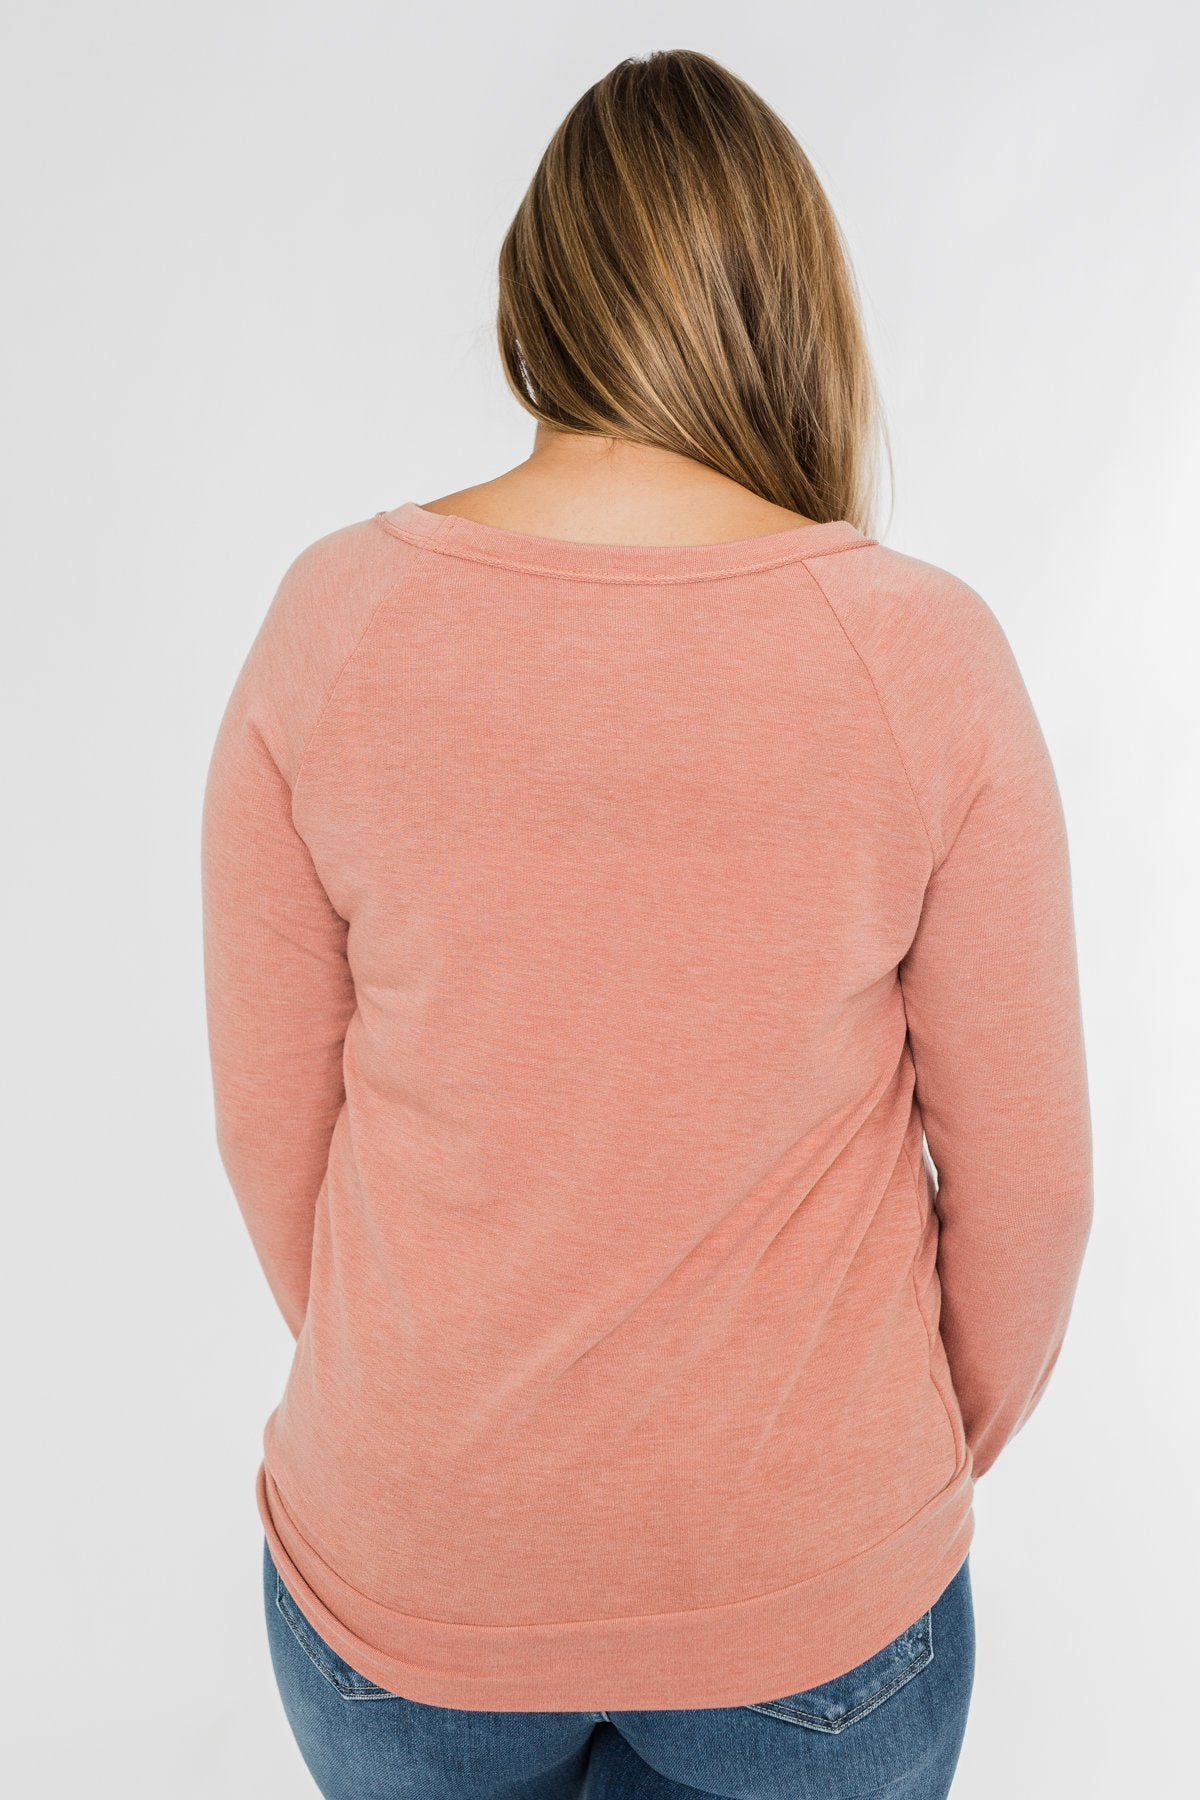 Come Along With Me Pullover Top- Peach